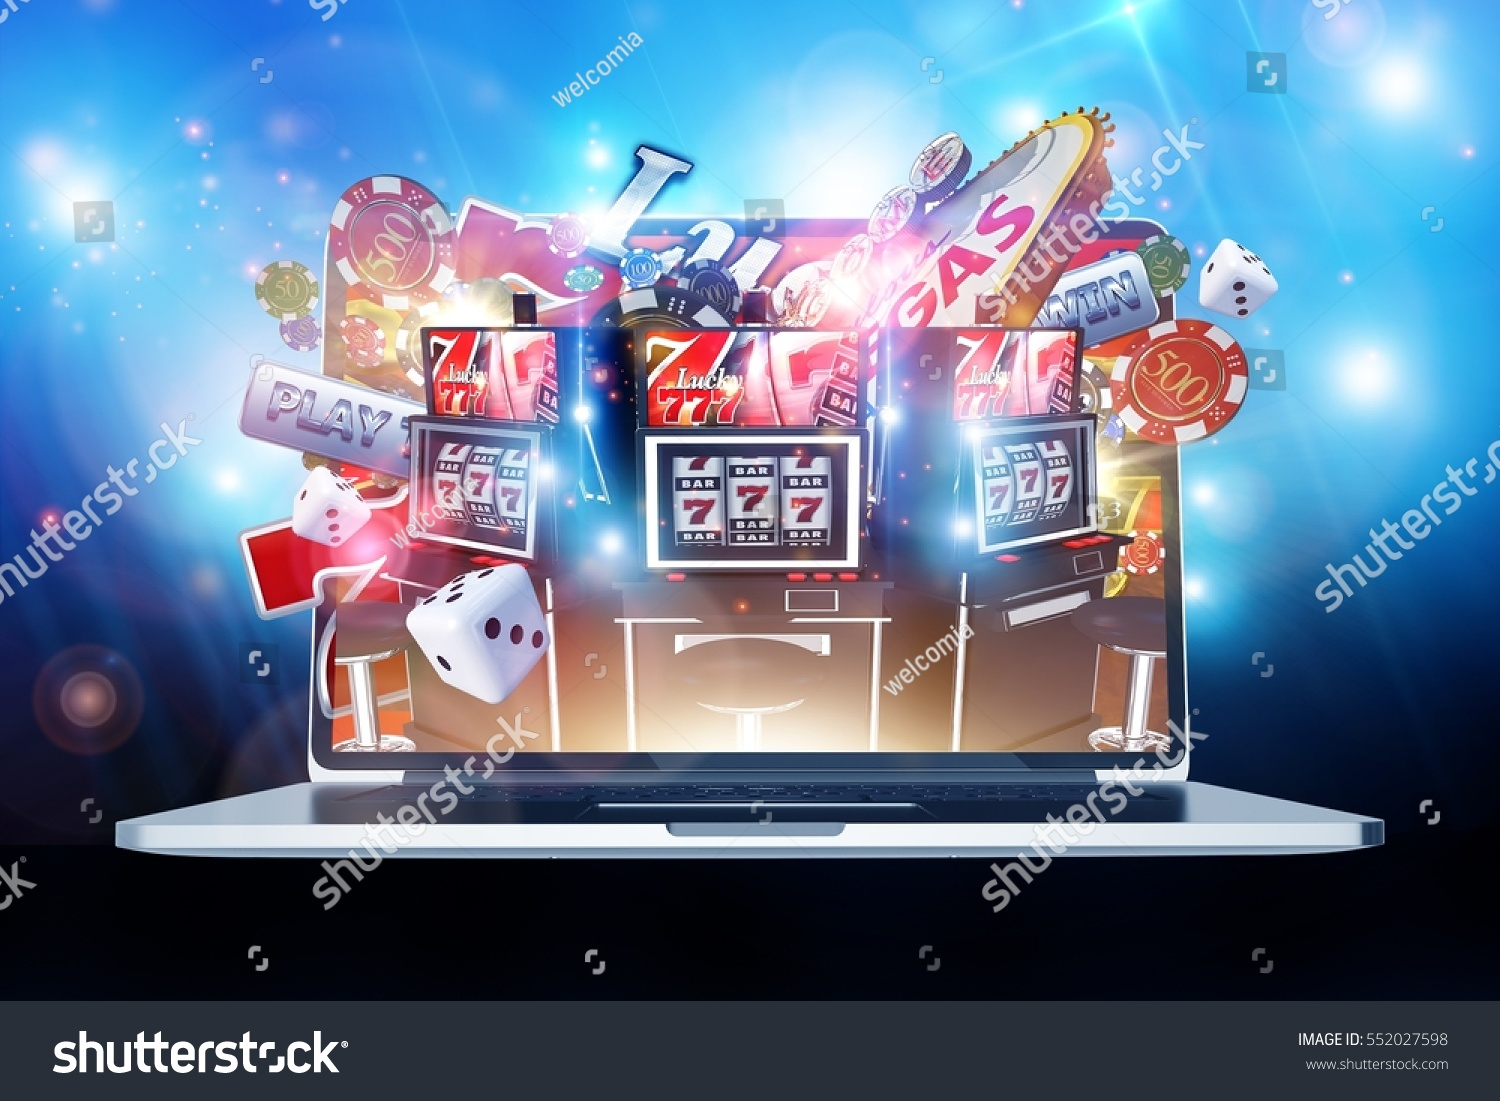 online internet casino 300 gaming pc